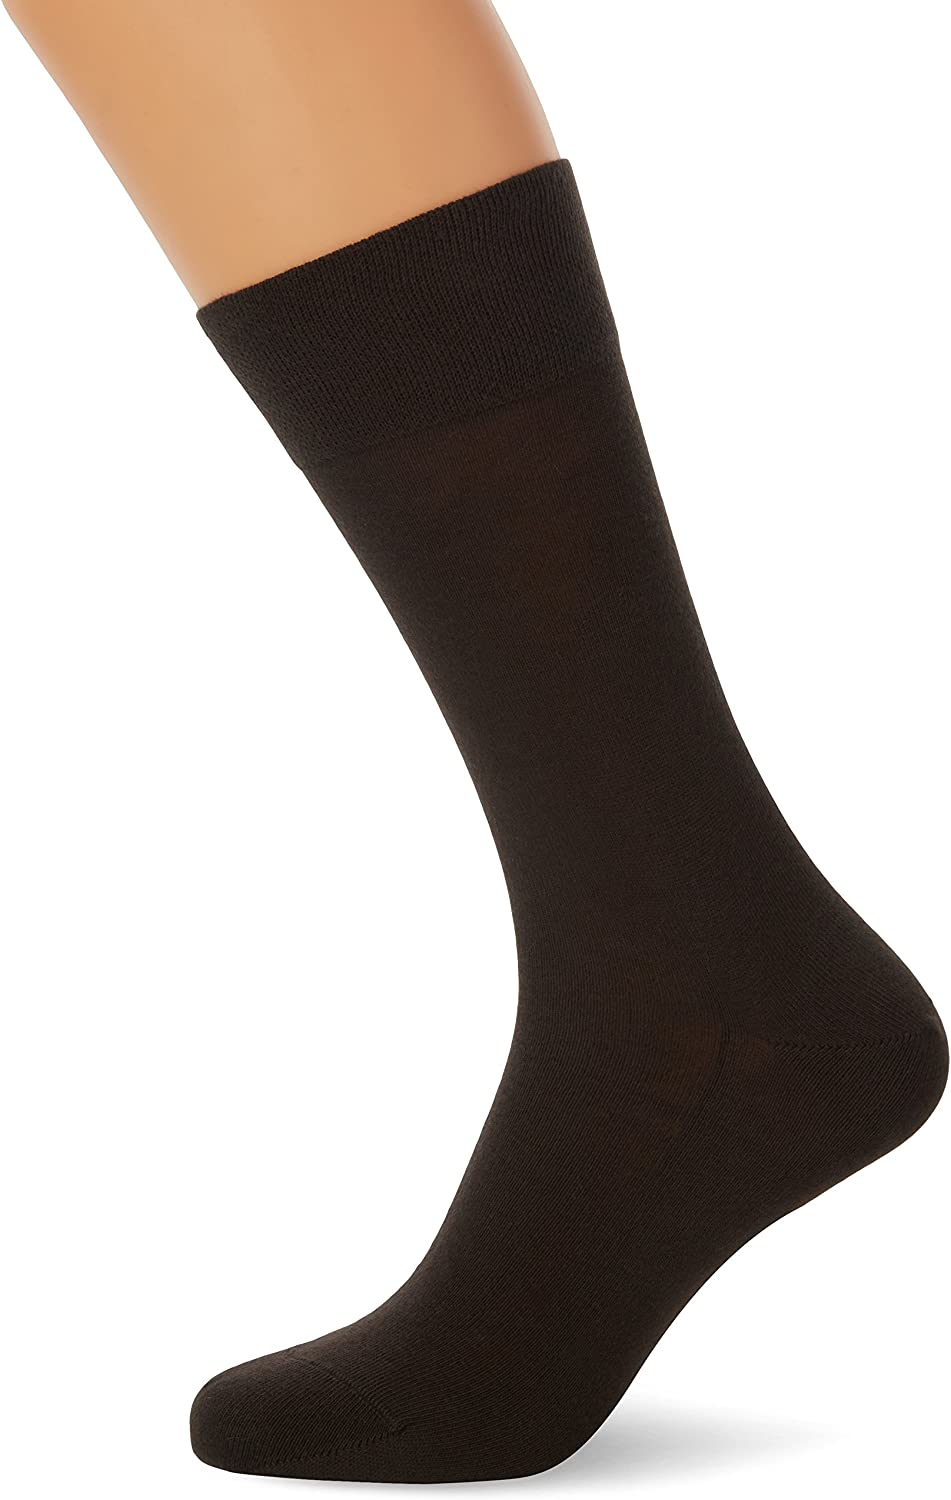 to wear all seasons 94/% Cotton EU 39-50 right and left foot for optimum fit 1 Pair Multiple Colours FALKE Men Sensitive London Socks Pressure-free cuff UK sizes 5.5-14